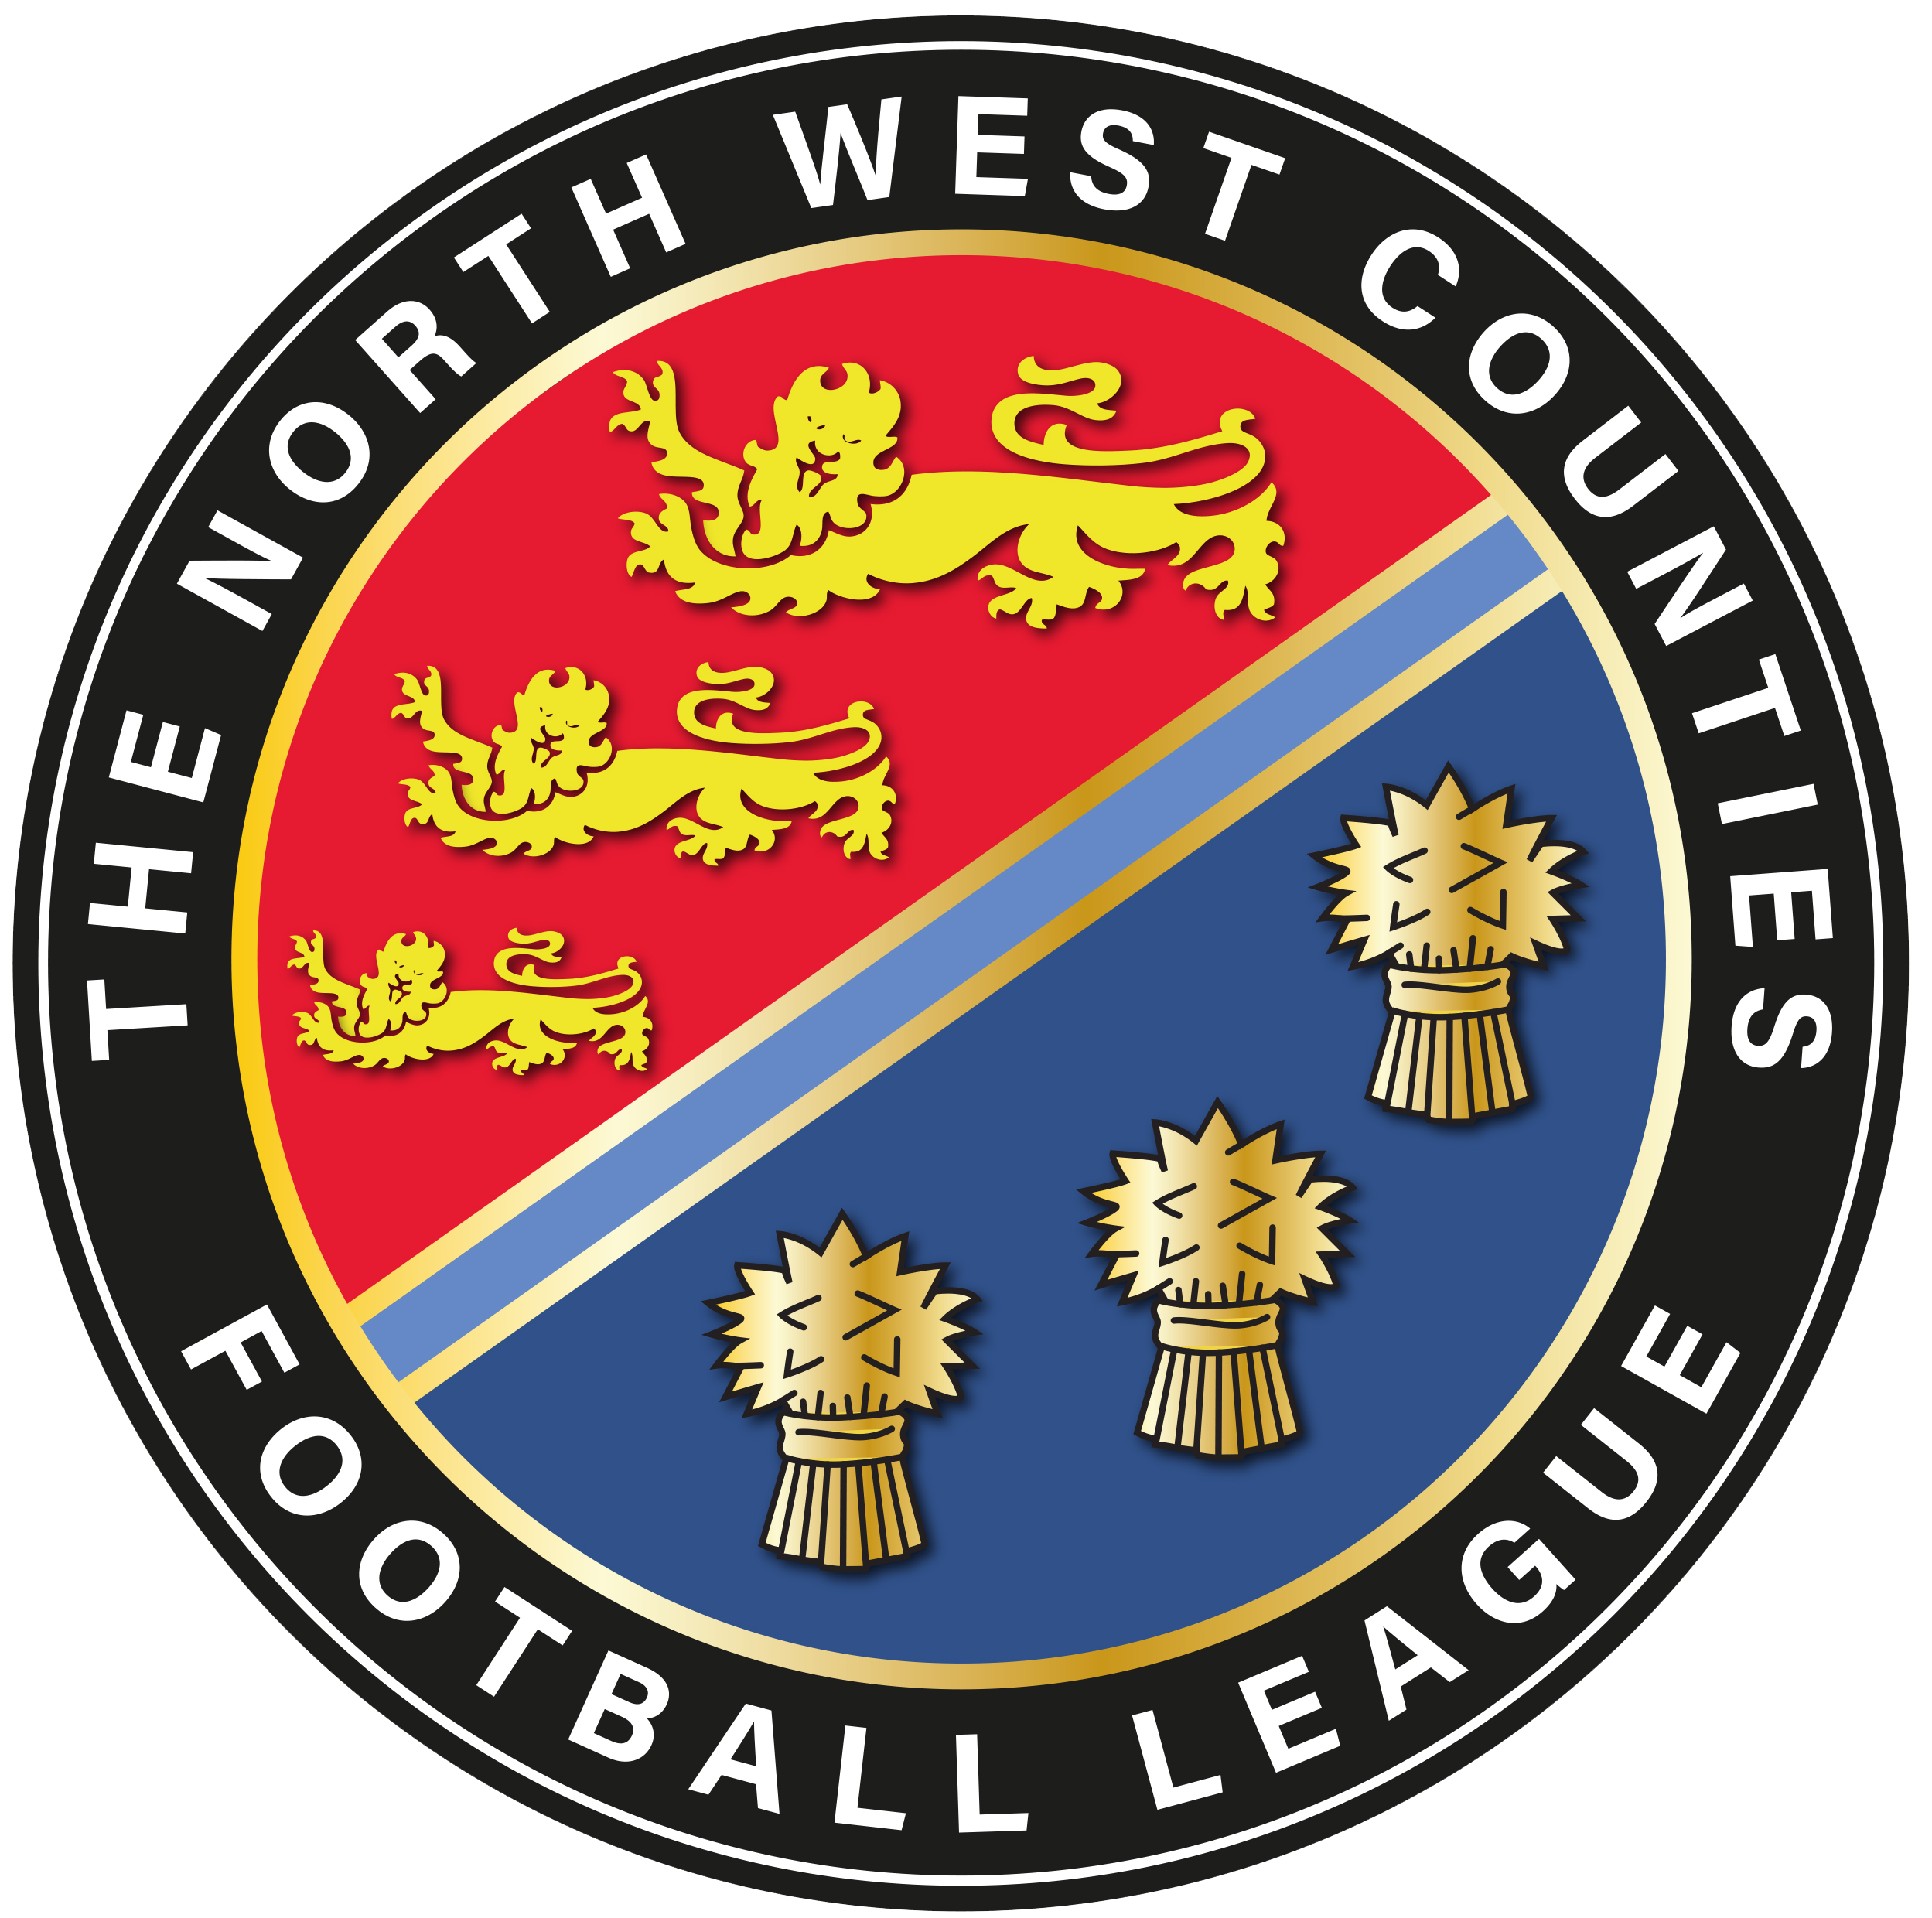 nwcfl-badge-design-201920-large.png